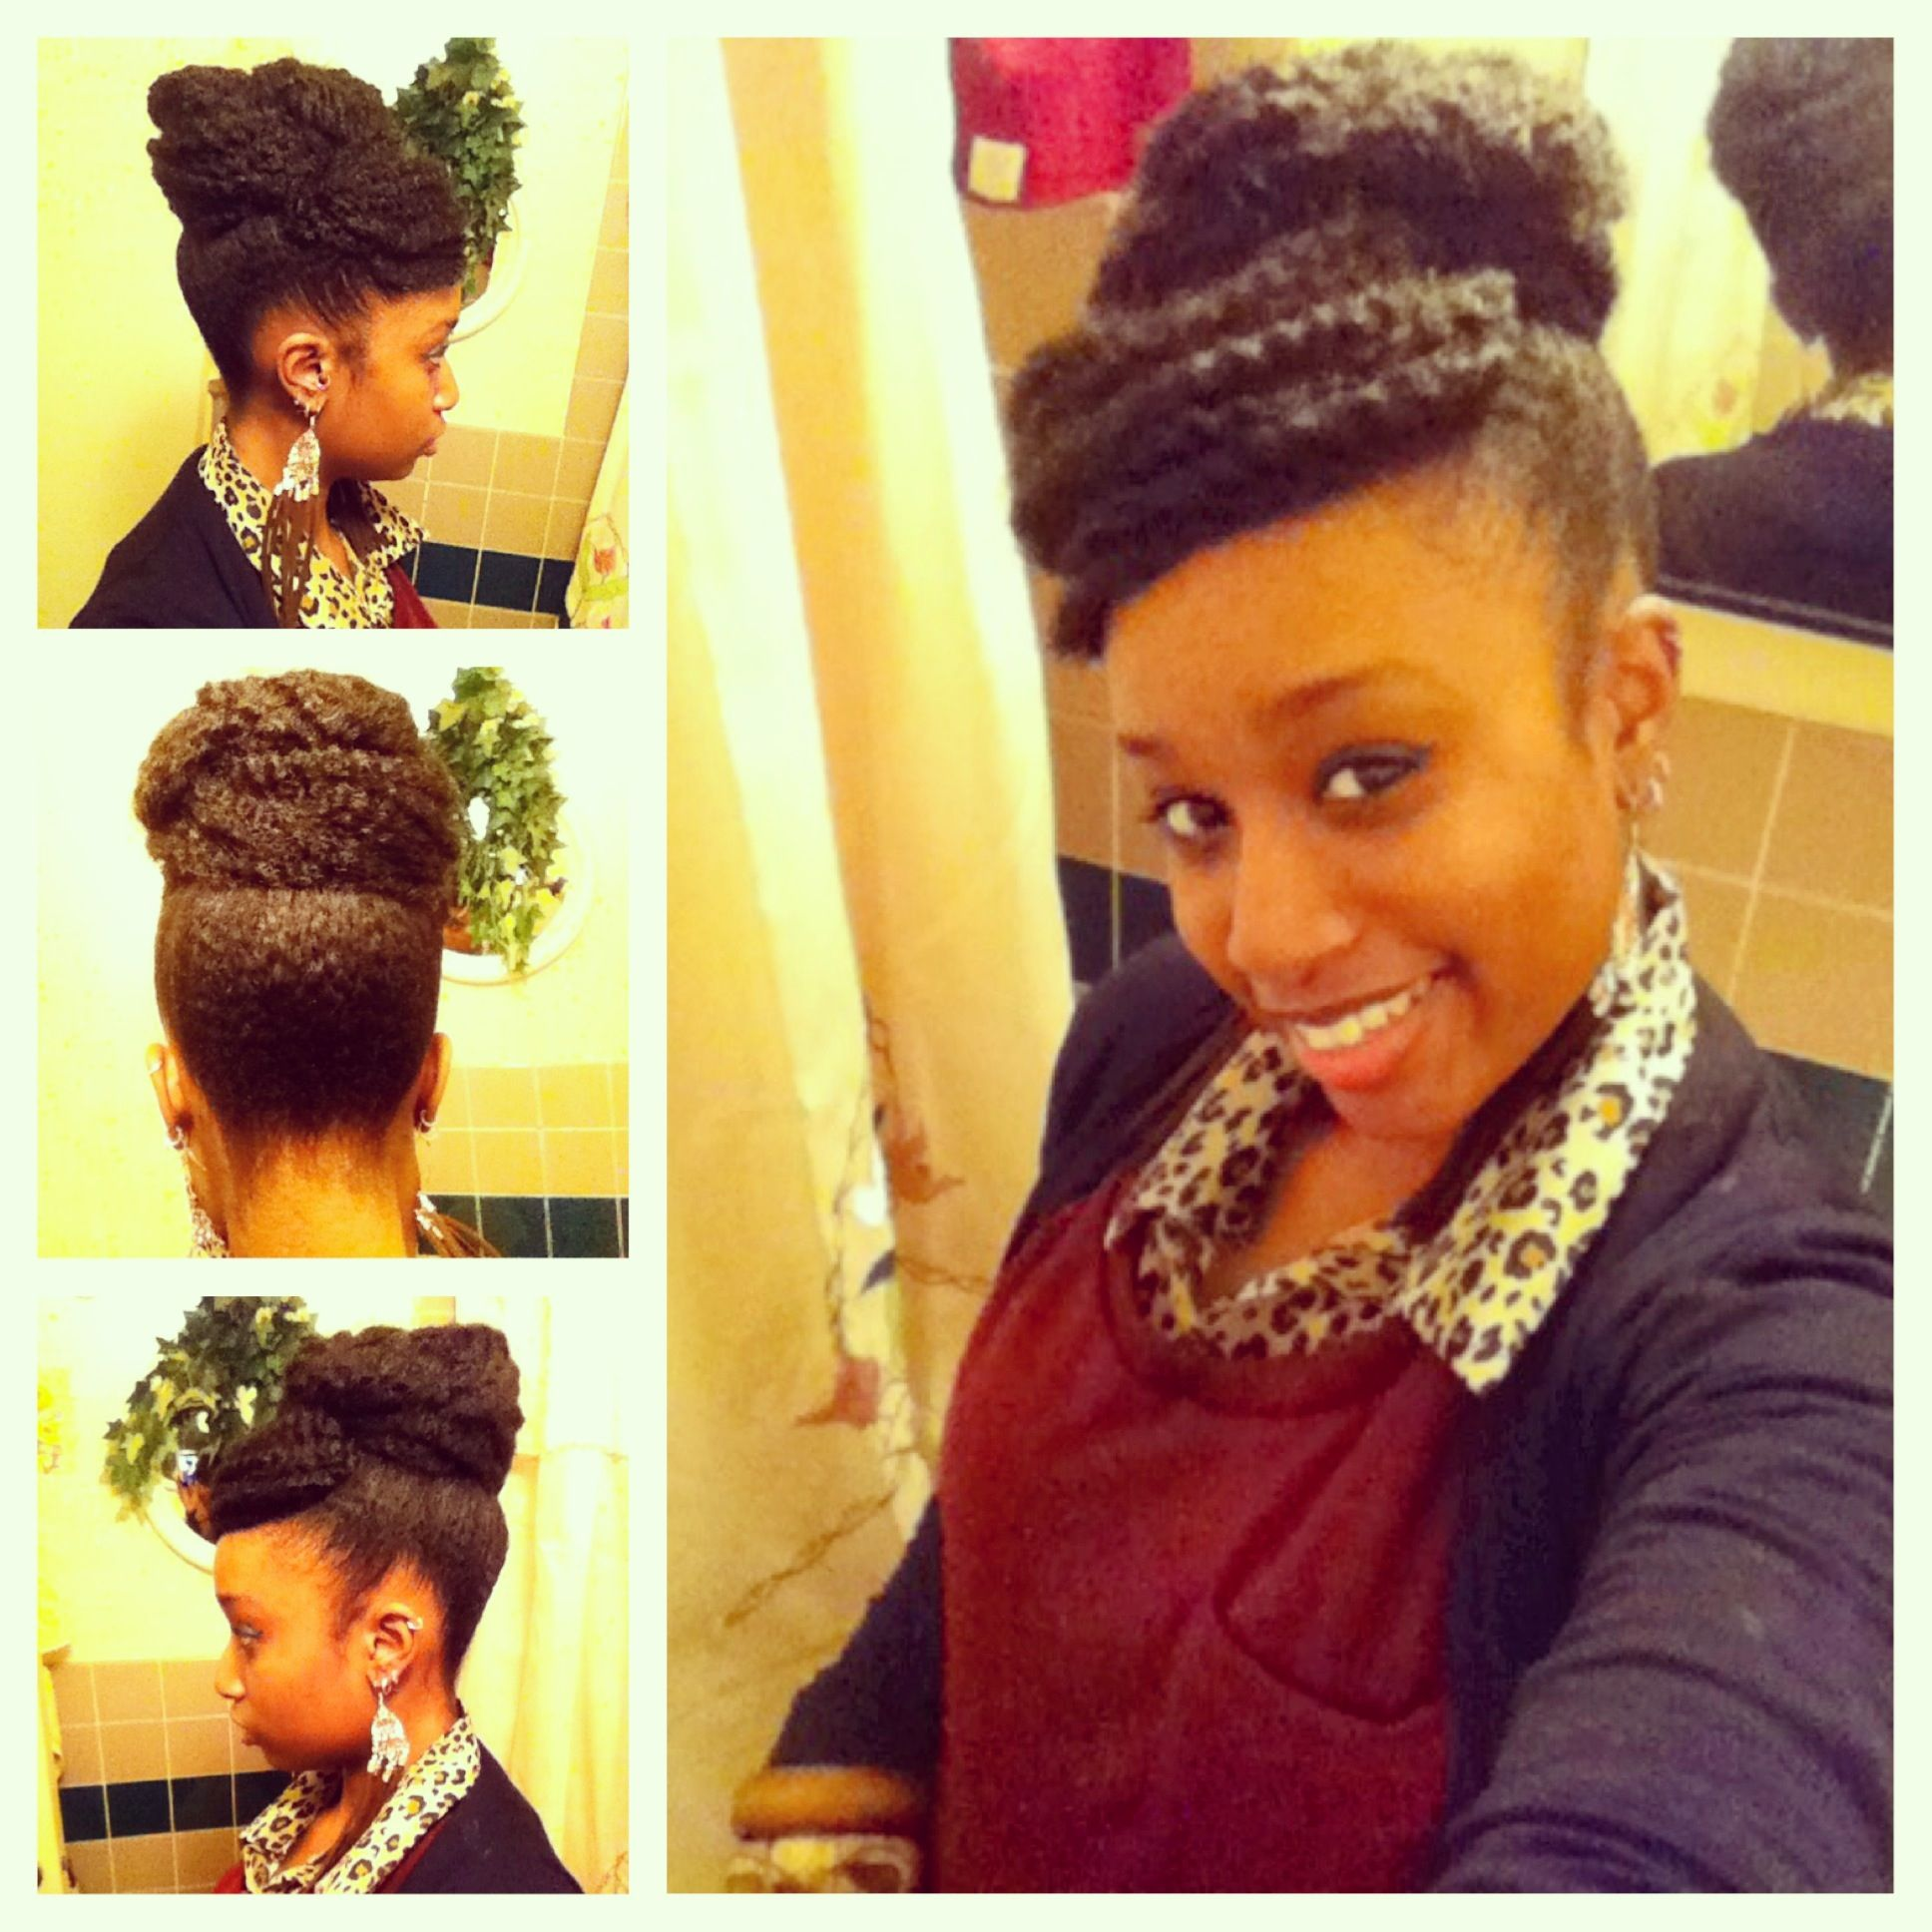 Faux Bun With Bangs Achieved With Marley Braiding Hair May Try This For Inhmd Marley Braiding Hair Natural Hair Updo Hair Styles